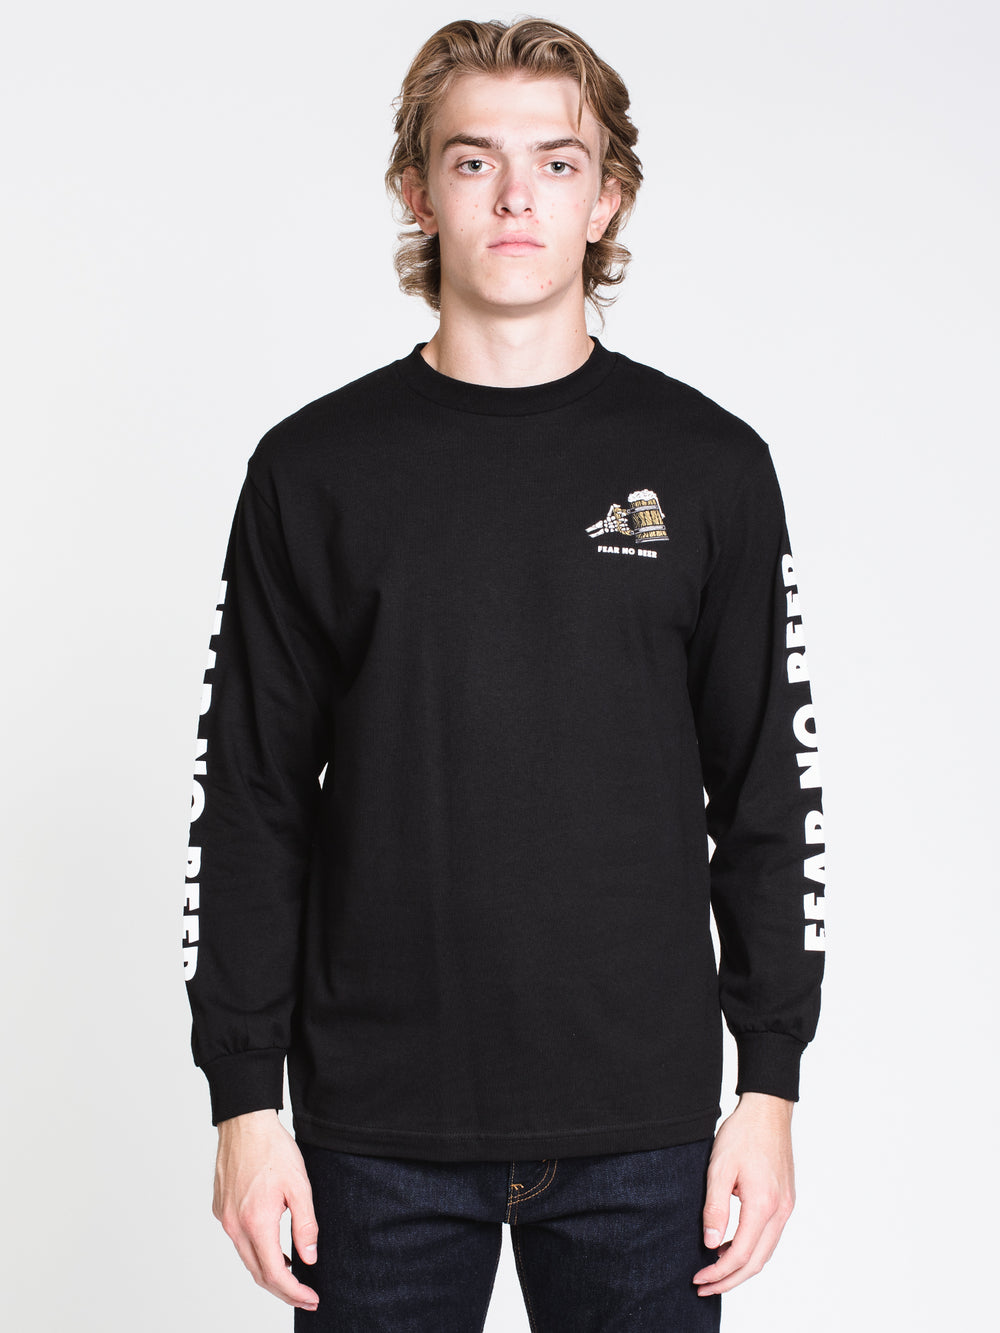 MENS FEAR LONG SLEEVE T-SHIRT - BLACK